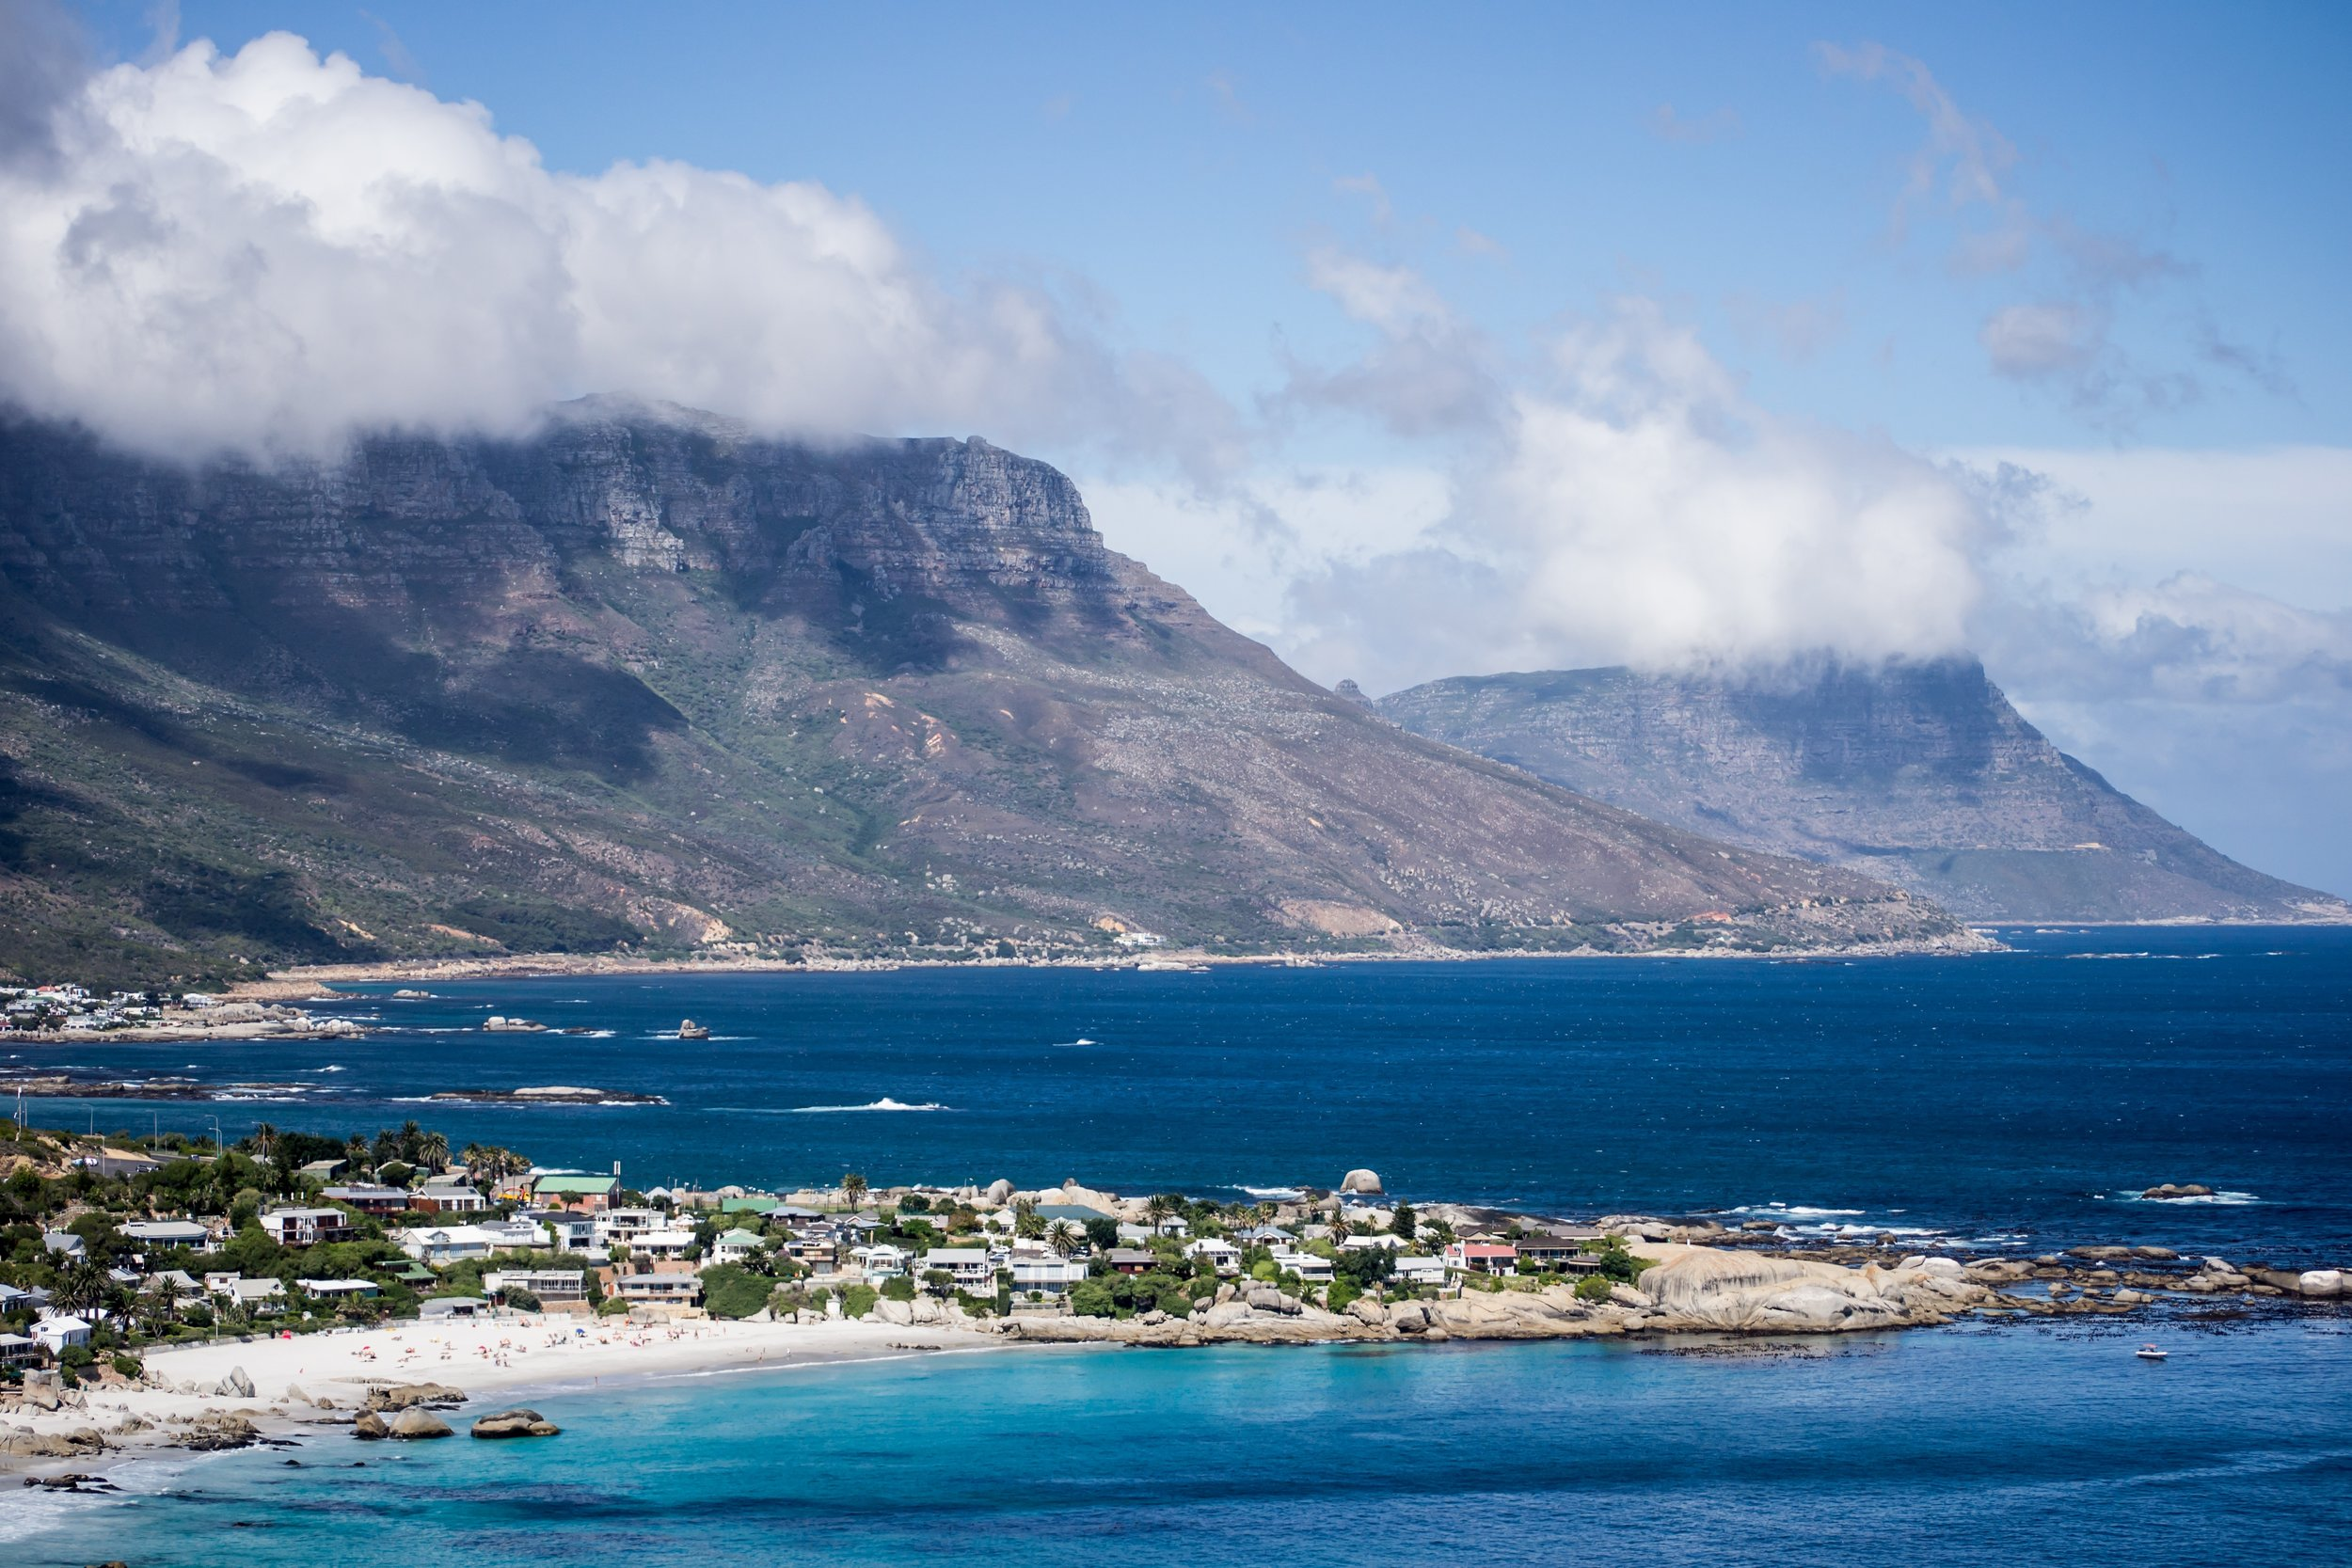 Ten Pictures that Will Make You Want to Travel to South Africa